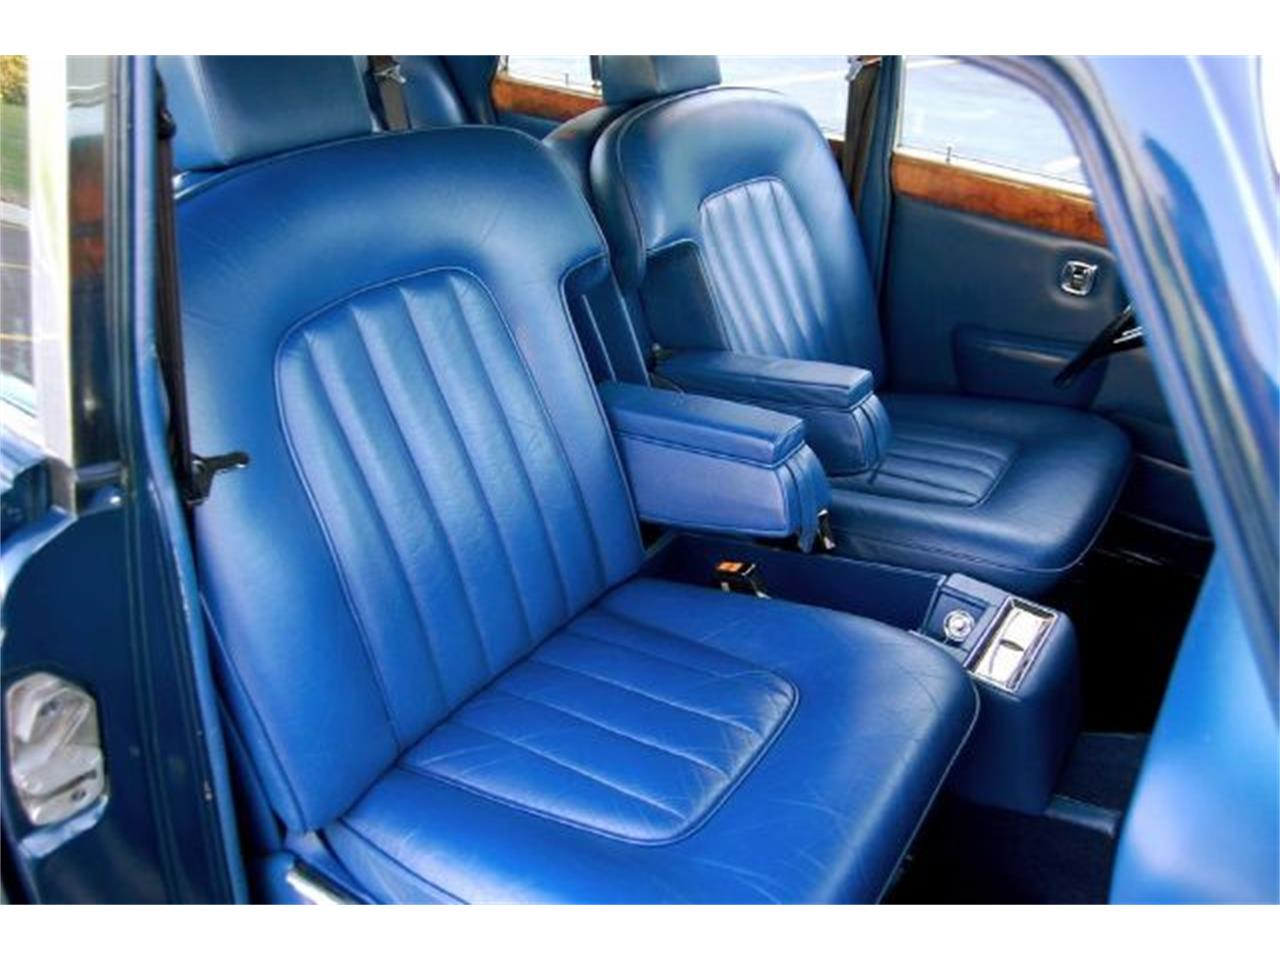 1973 Rolls-Royce Silver Shadow for sale in Carey, IL – photo 50